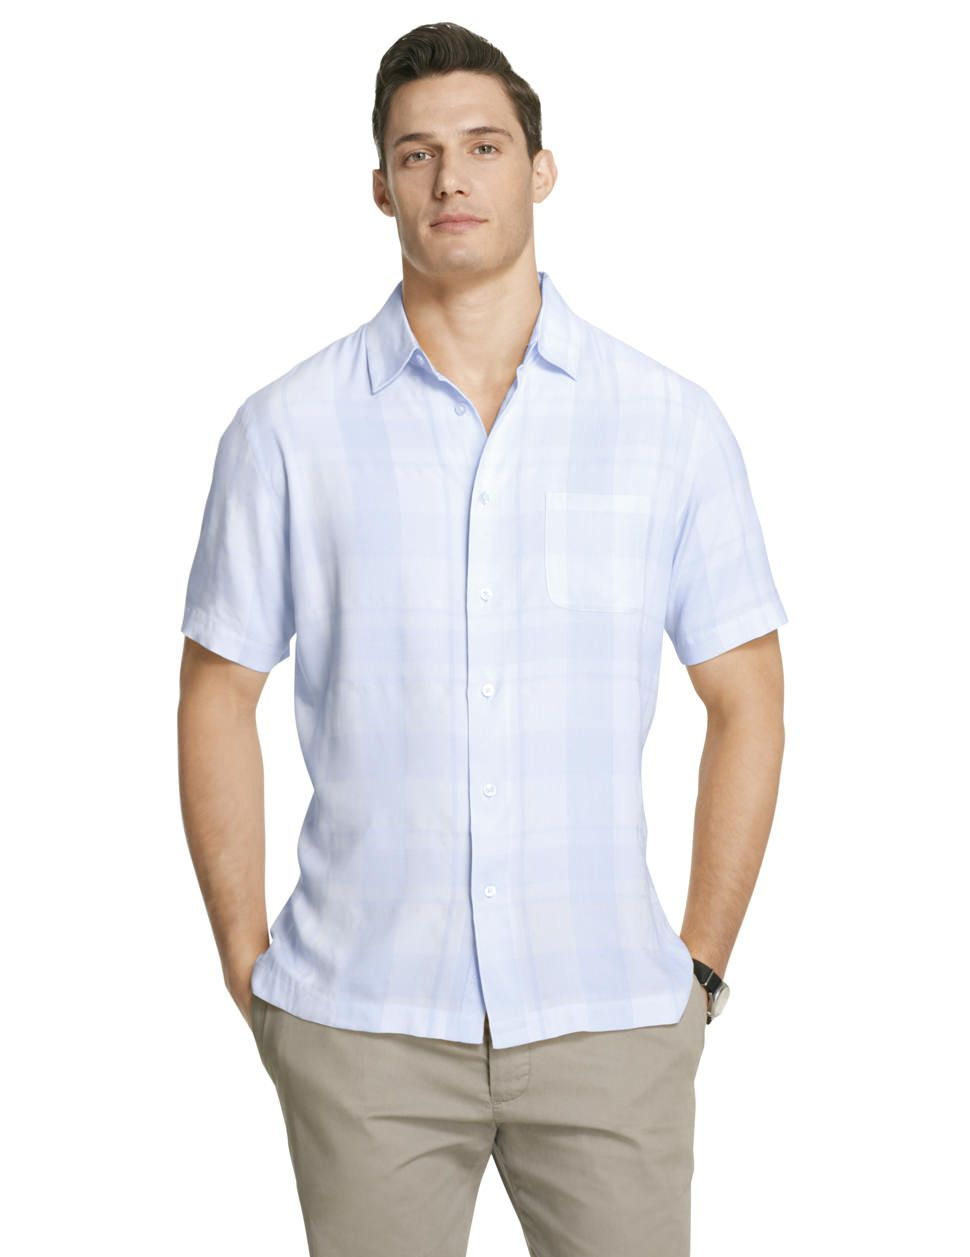 2ee04571 Good looking and versatile short sleeve Button-Down with a barely there  large check pattern over all.